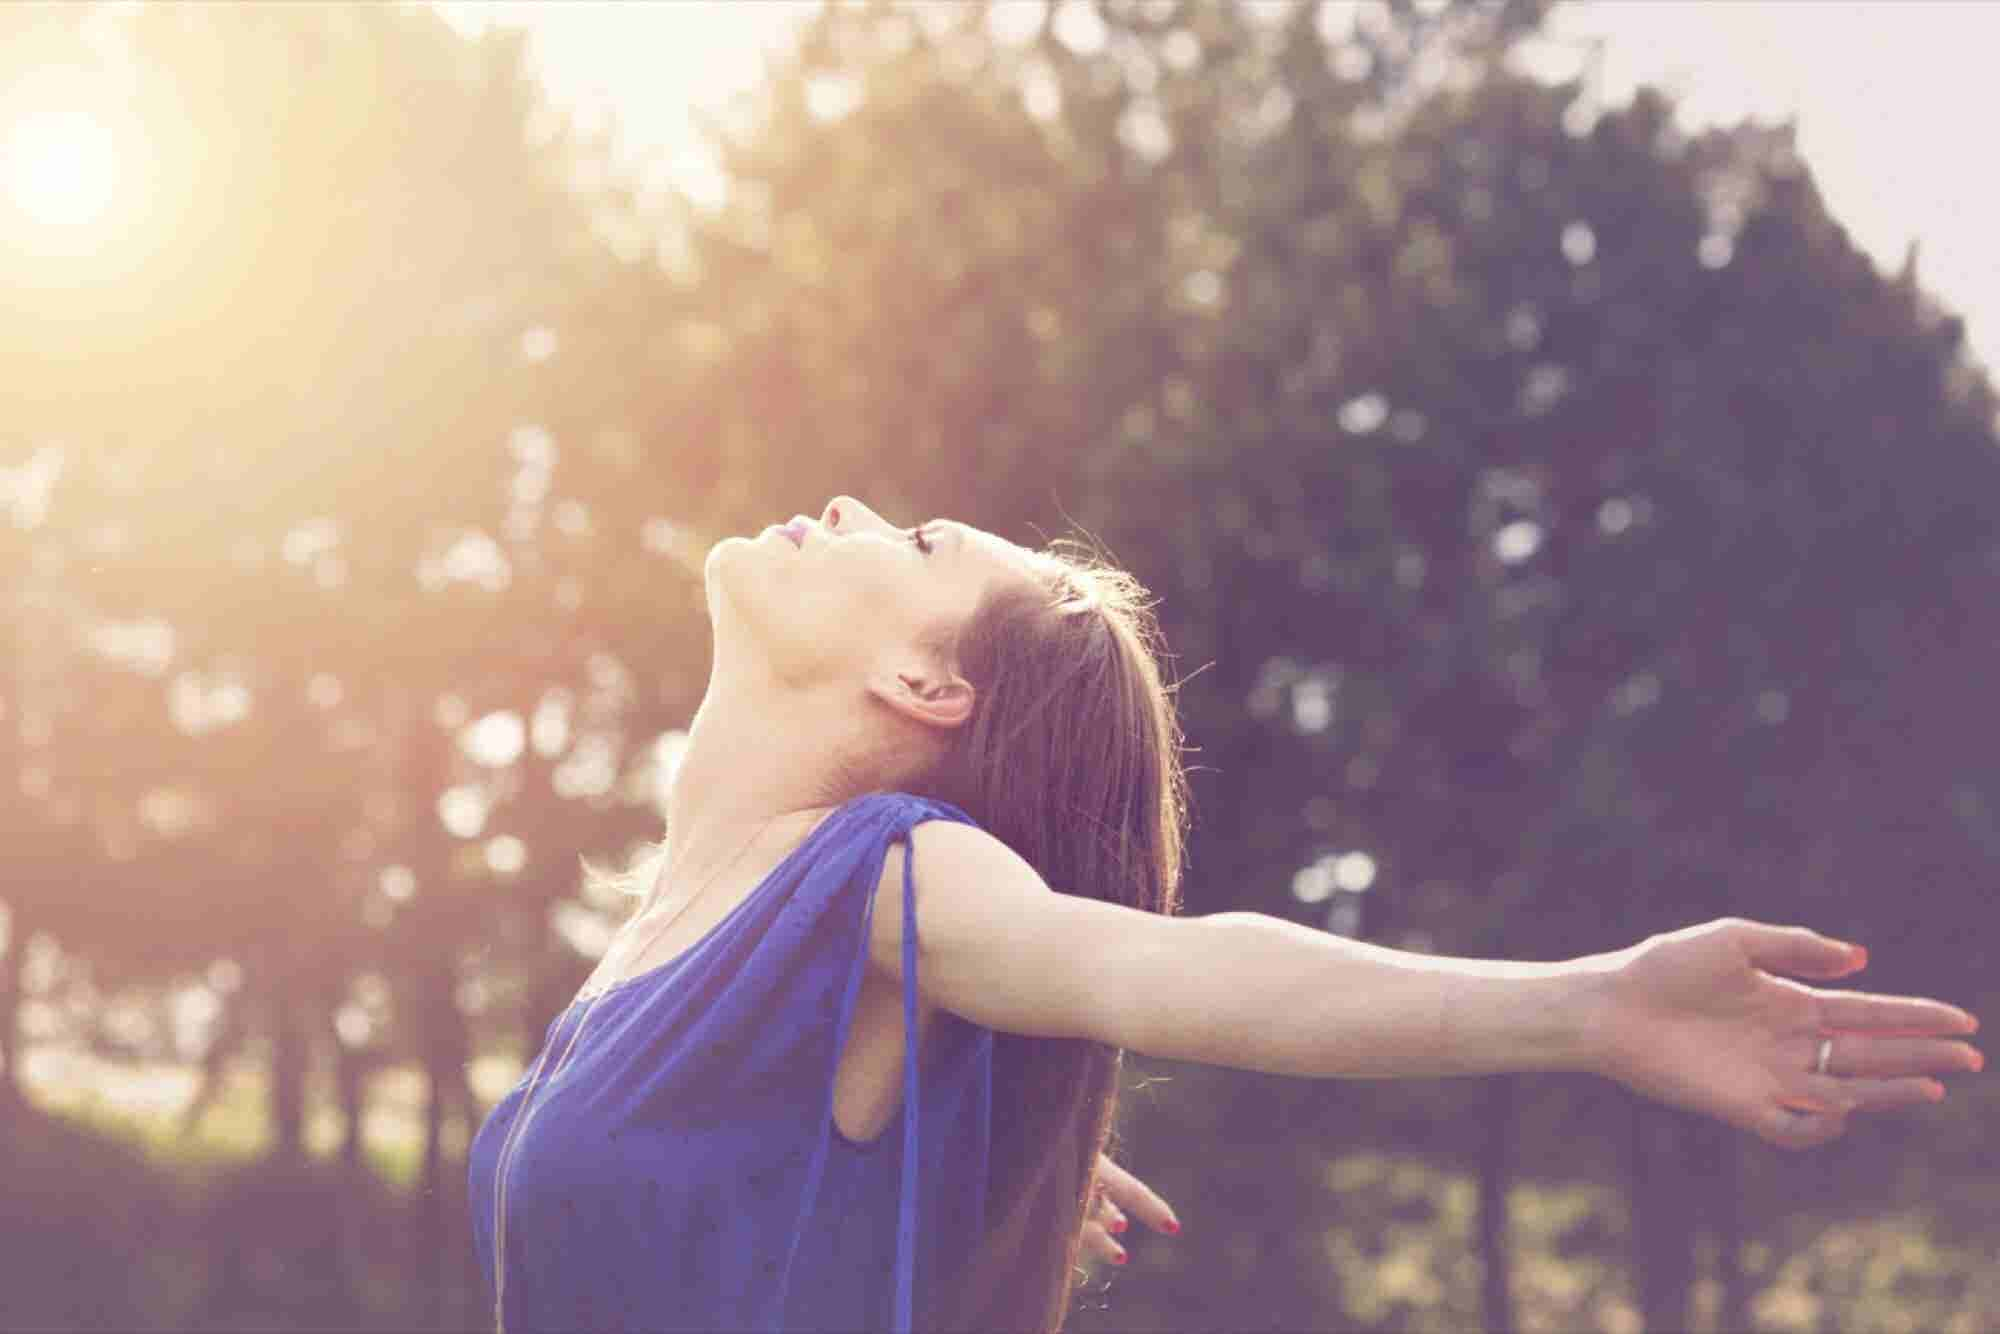 To Achieve Happiness, Don't Confuse Pleasure With Fulfillment